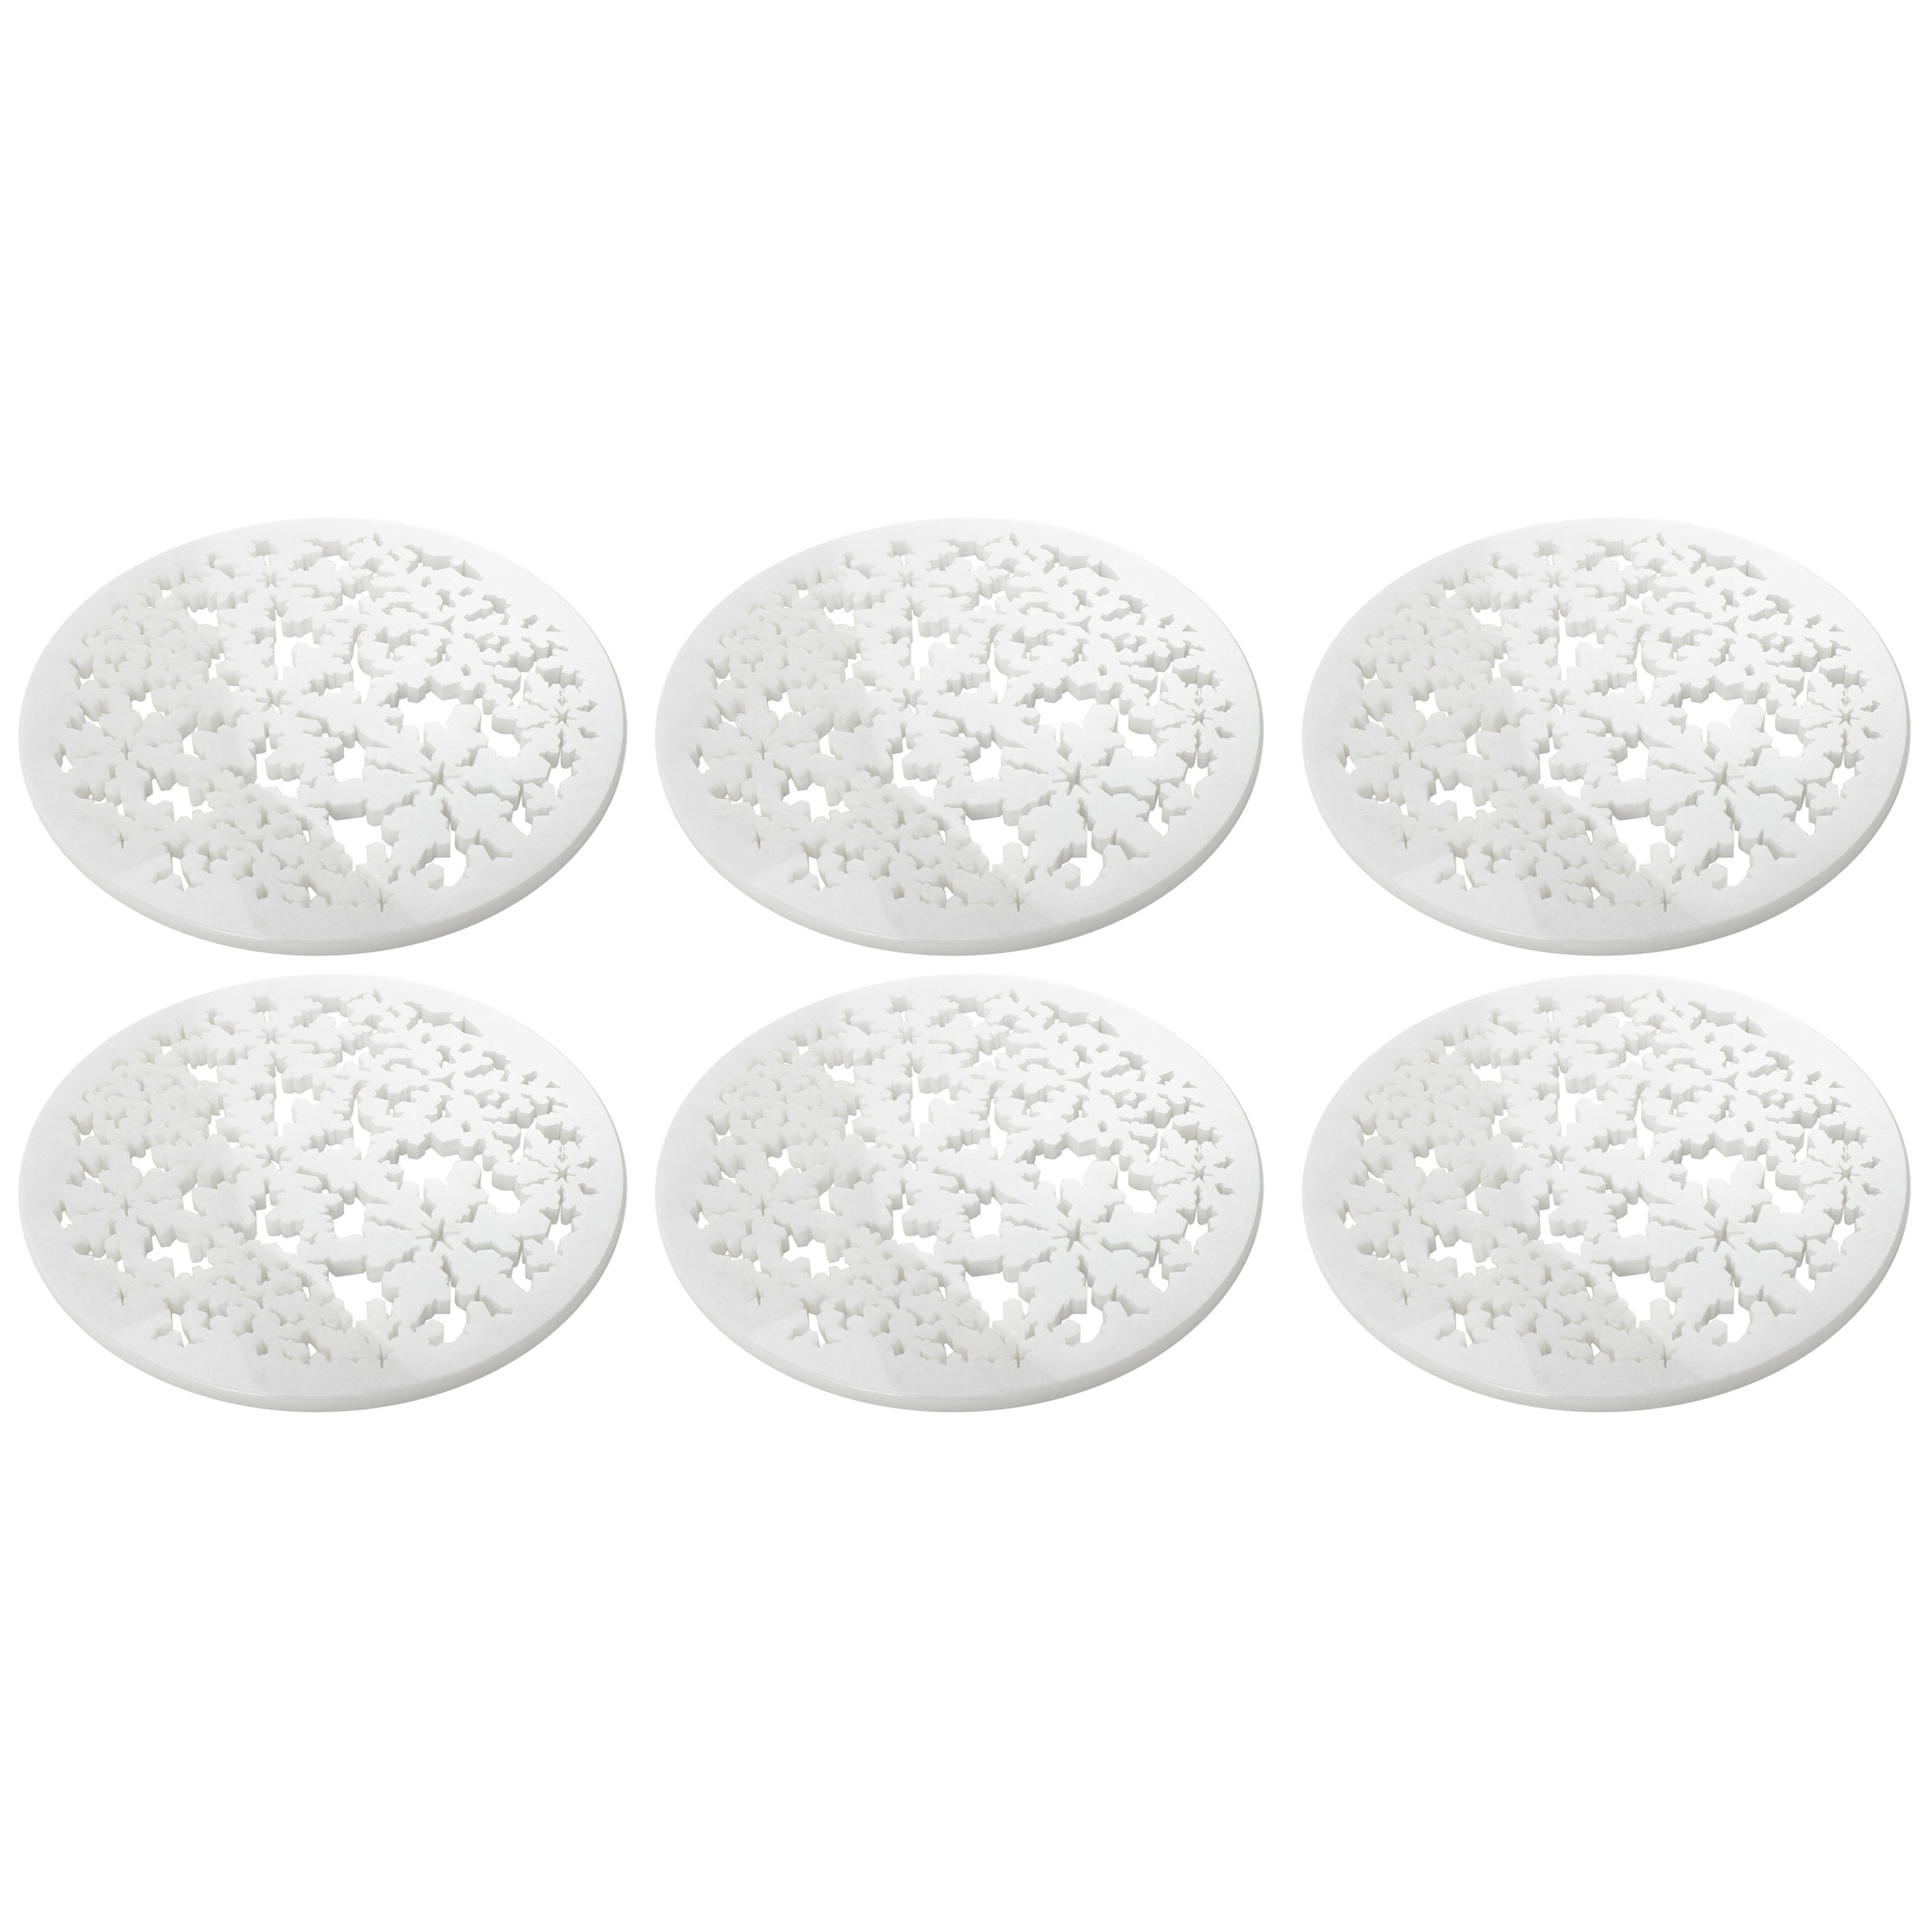 Set of 6 Charger Plate in Absolute Crystalline White Marble Christmas Decoration